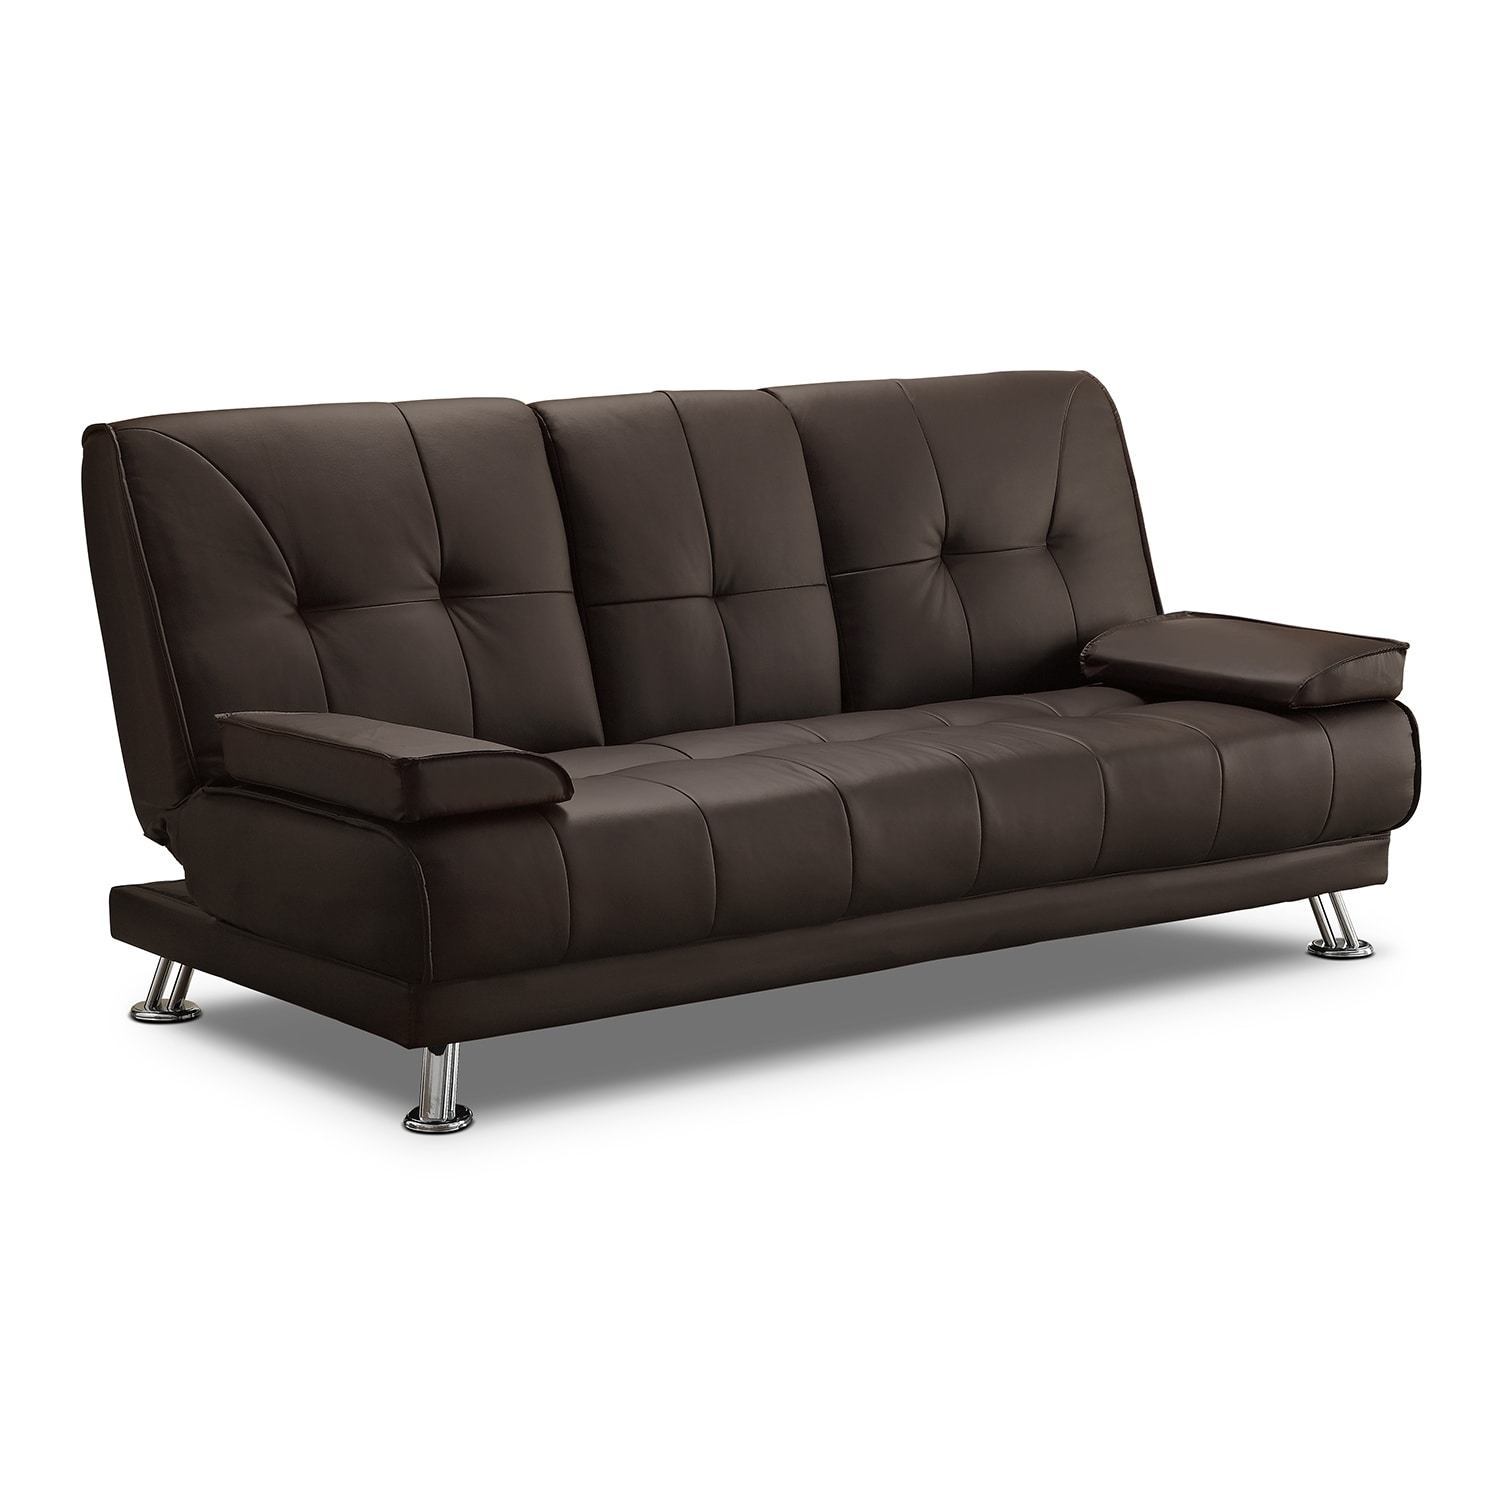 Flash Futon Sofa Bed : Value City Furniture